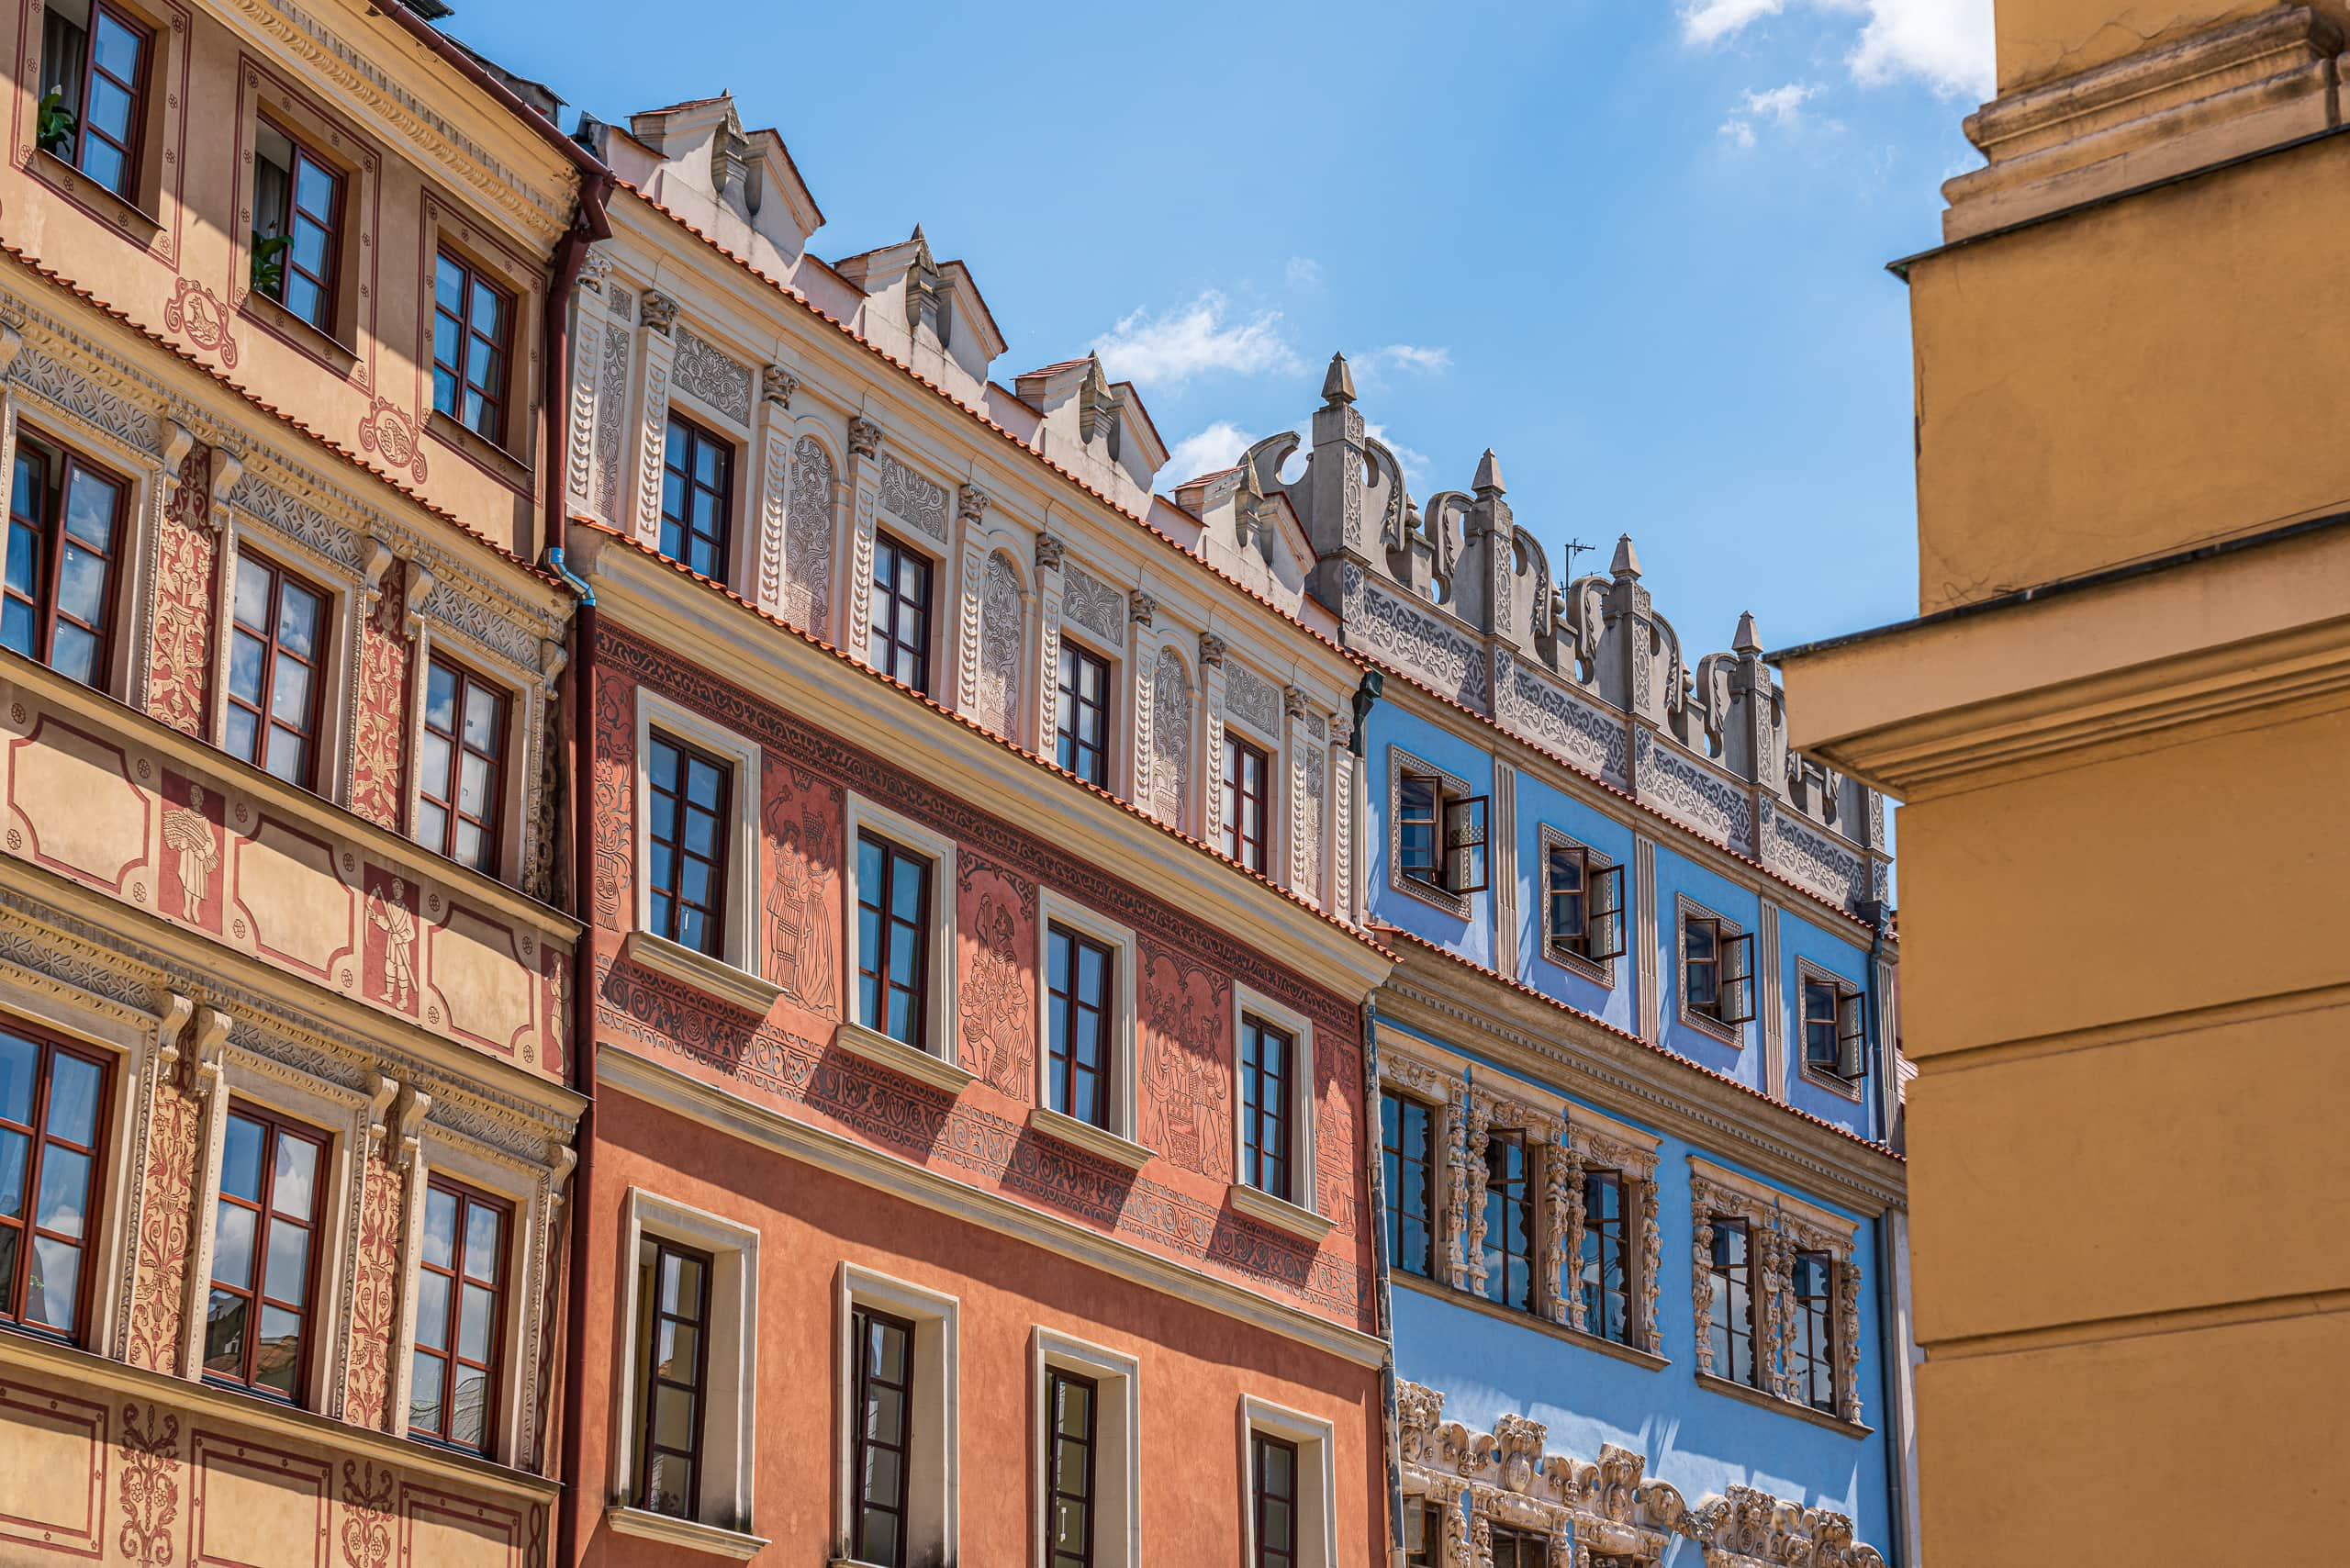 Building in the Old Town | f/8 1/320sec ISO-100 56mm  | ILCE-7RM3 | 2019-06-24 11:59:42